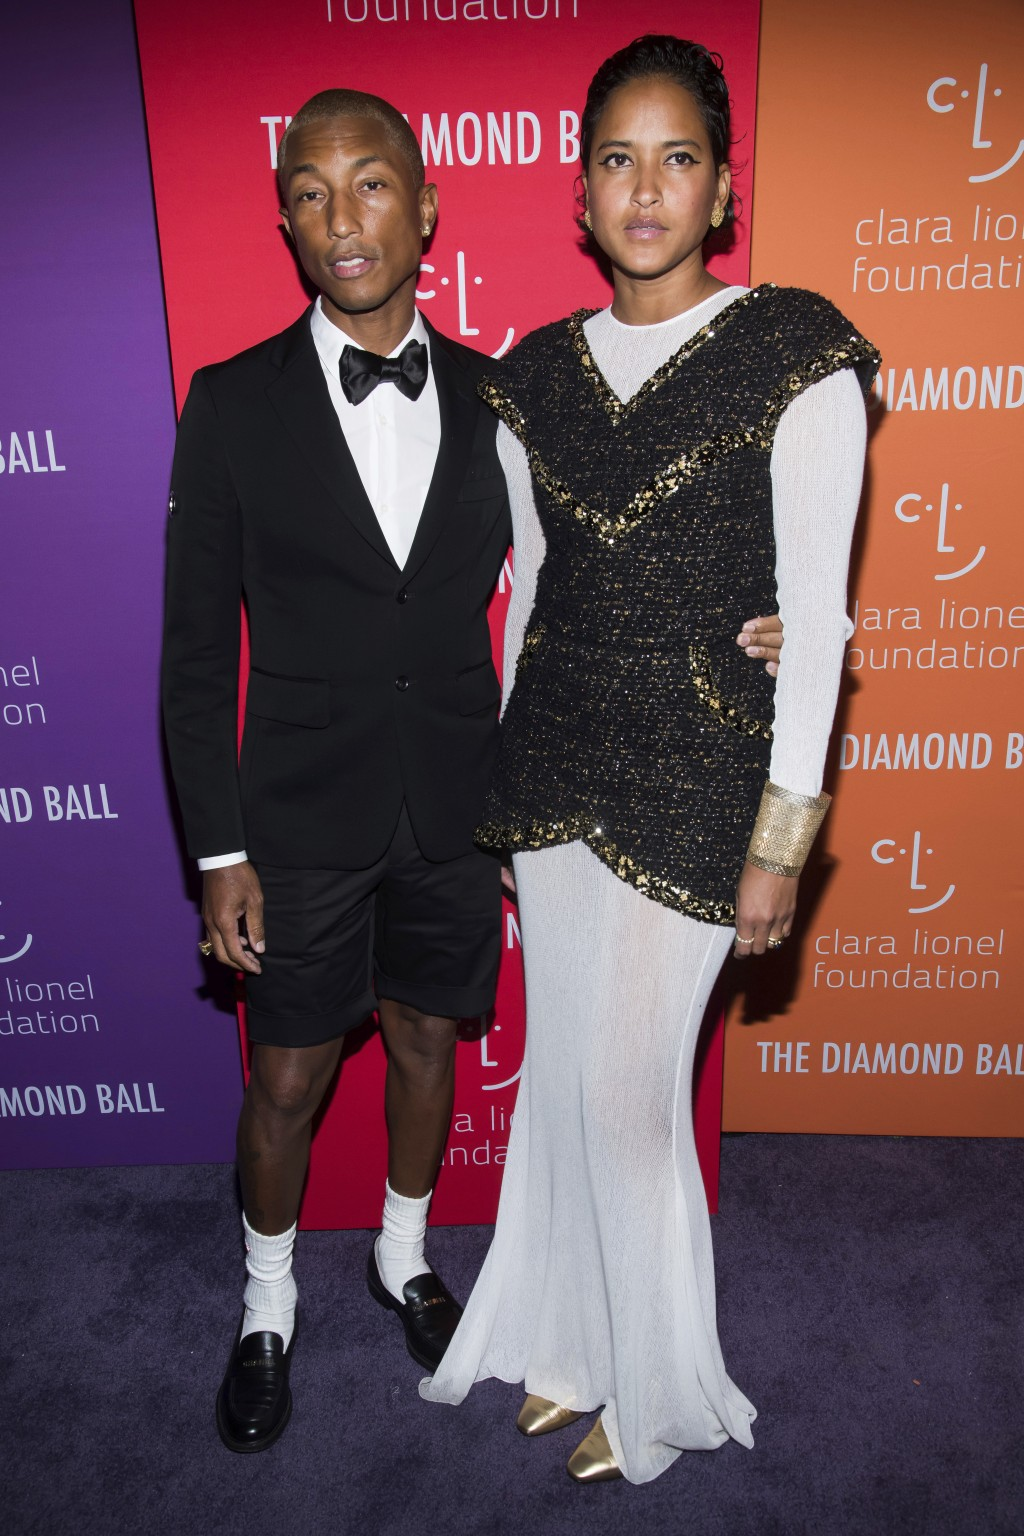 Pharrell Williams and Helen Lasichanh attend the 5th annual Diamond Ball benefit gala at Cipriani Wall Street on Thursday, Sept. 12, 2019, in New York...